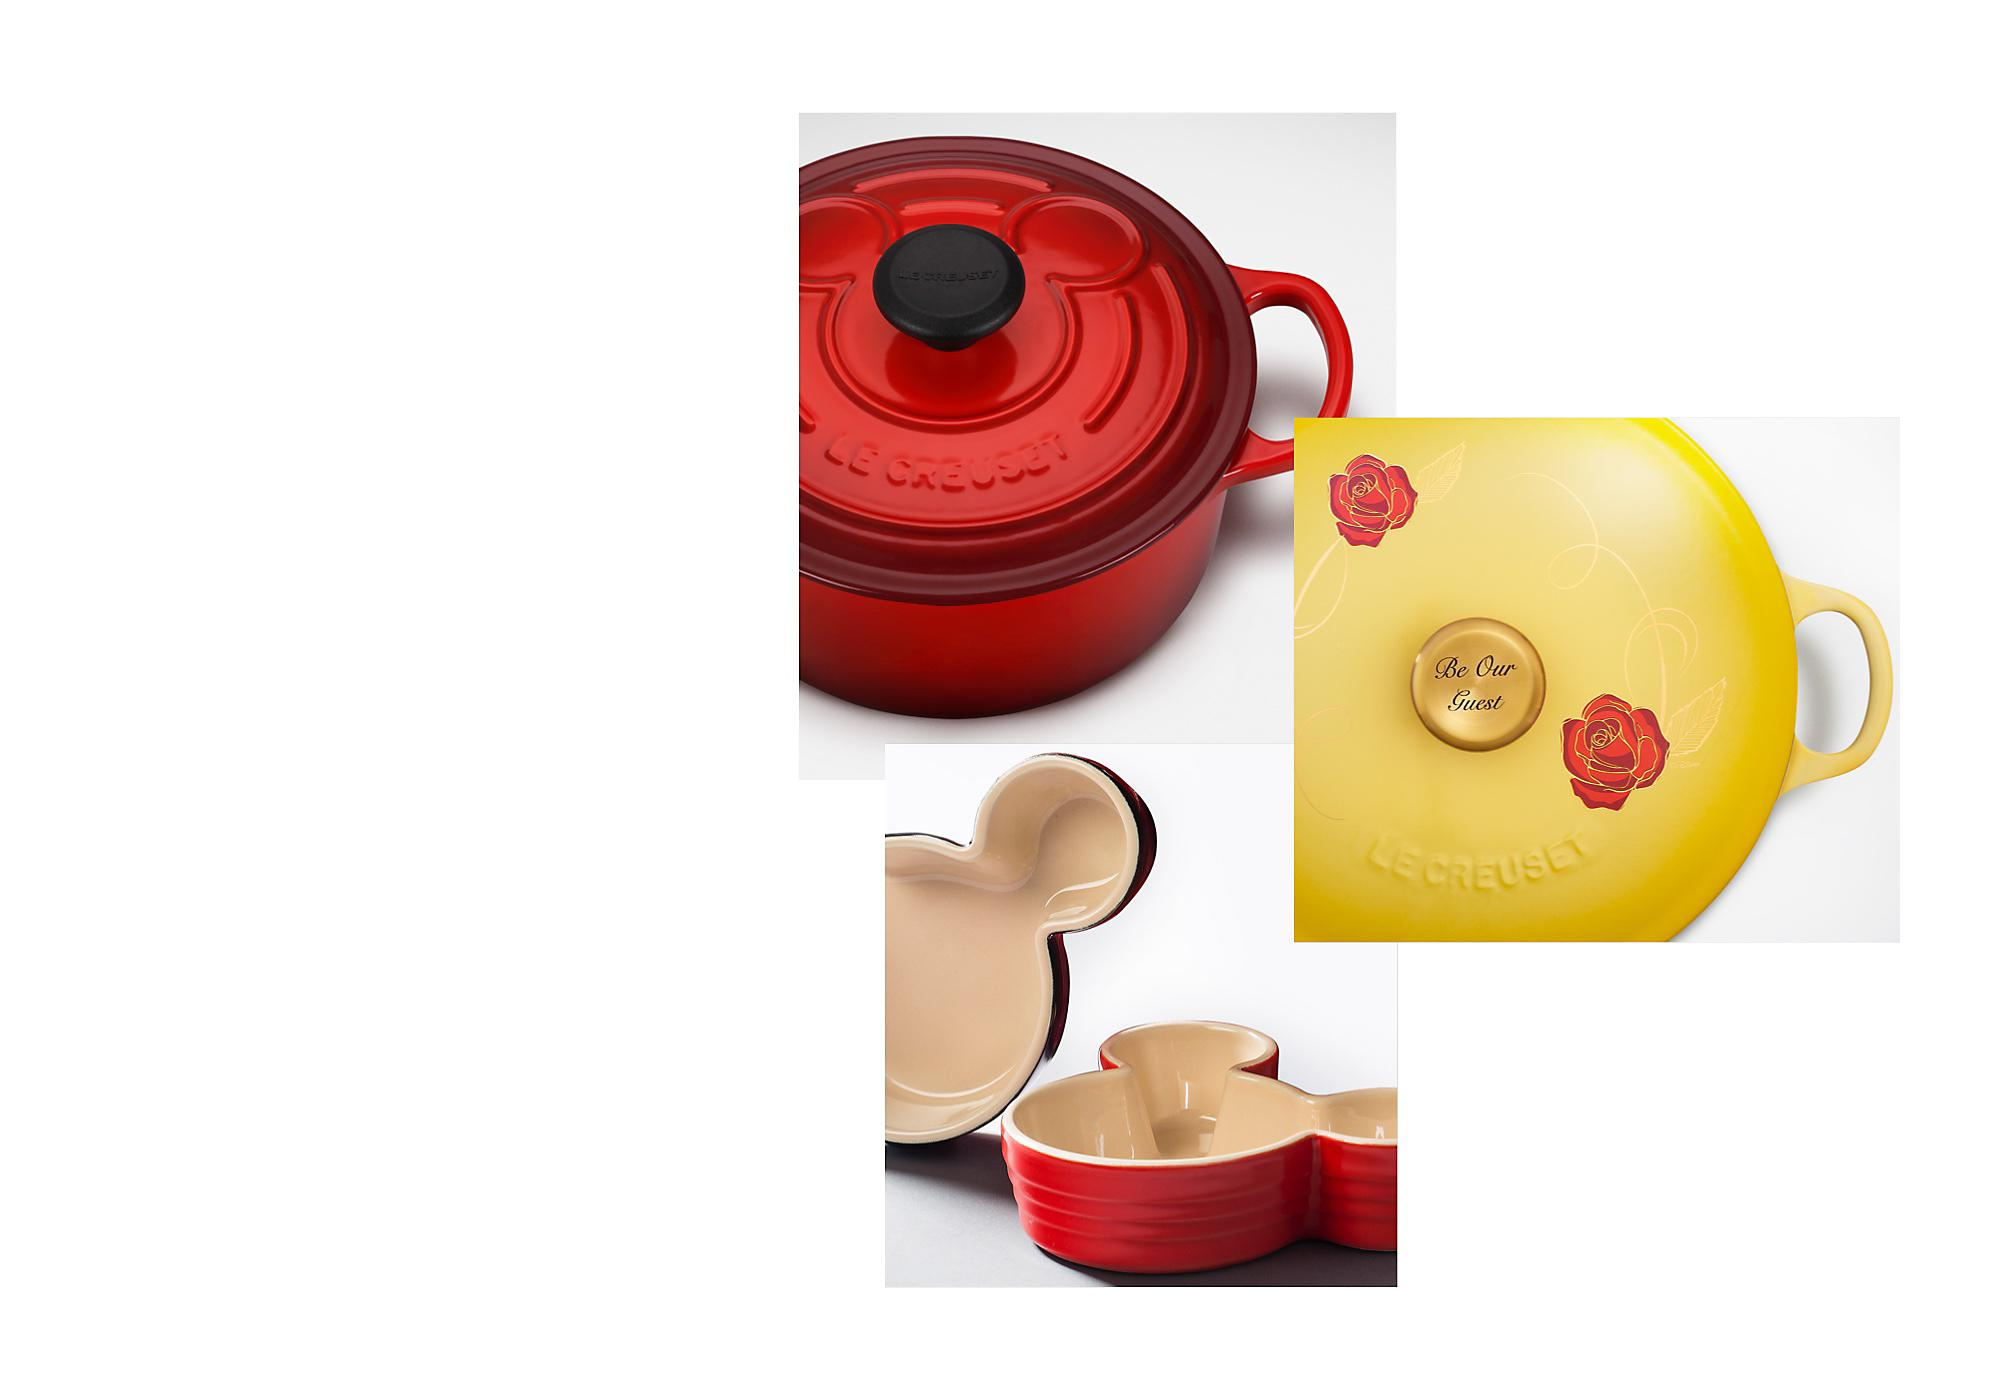 World-Class Cookware Le Creuset have been producing world-class cookware for almost 100 years